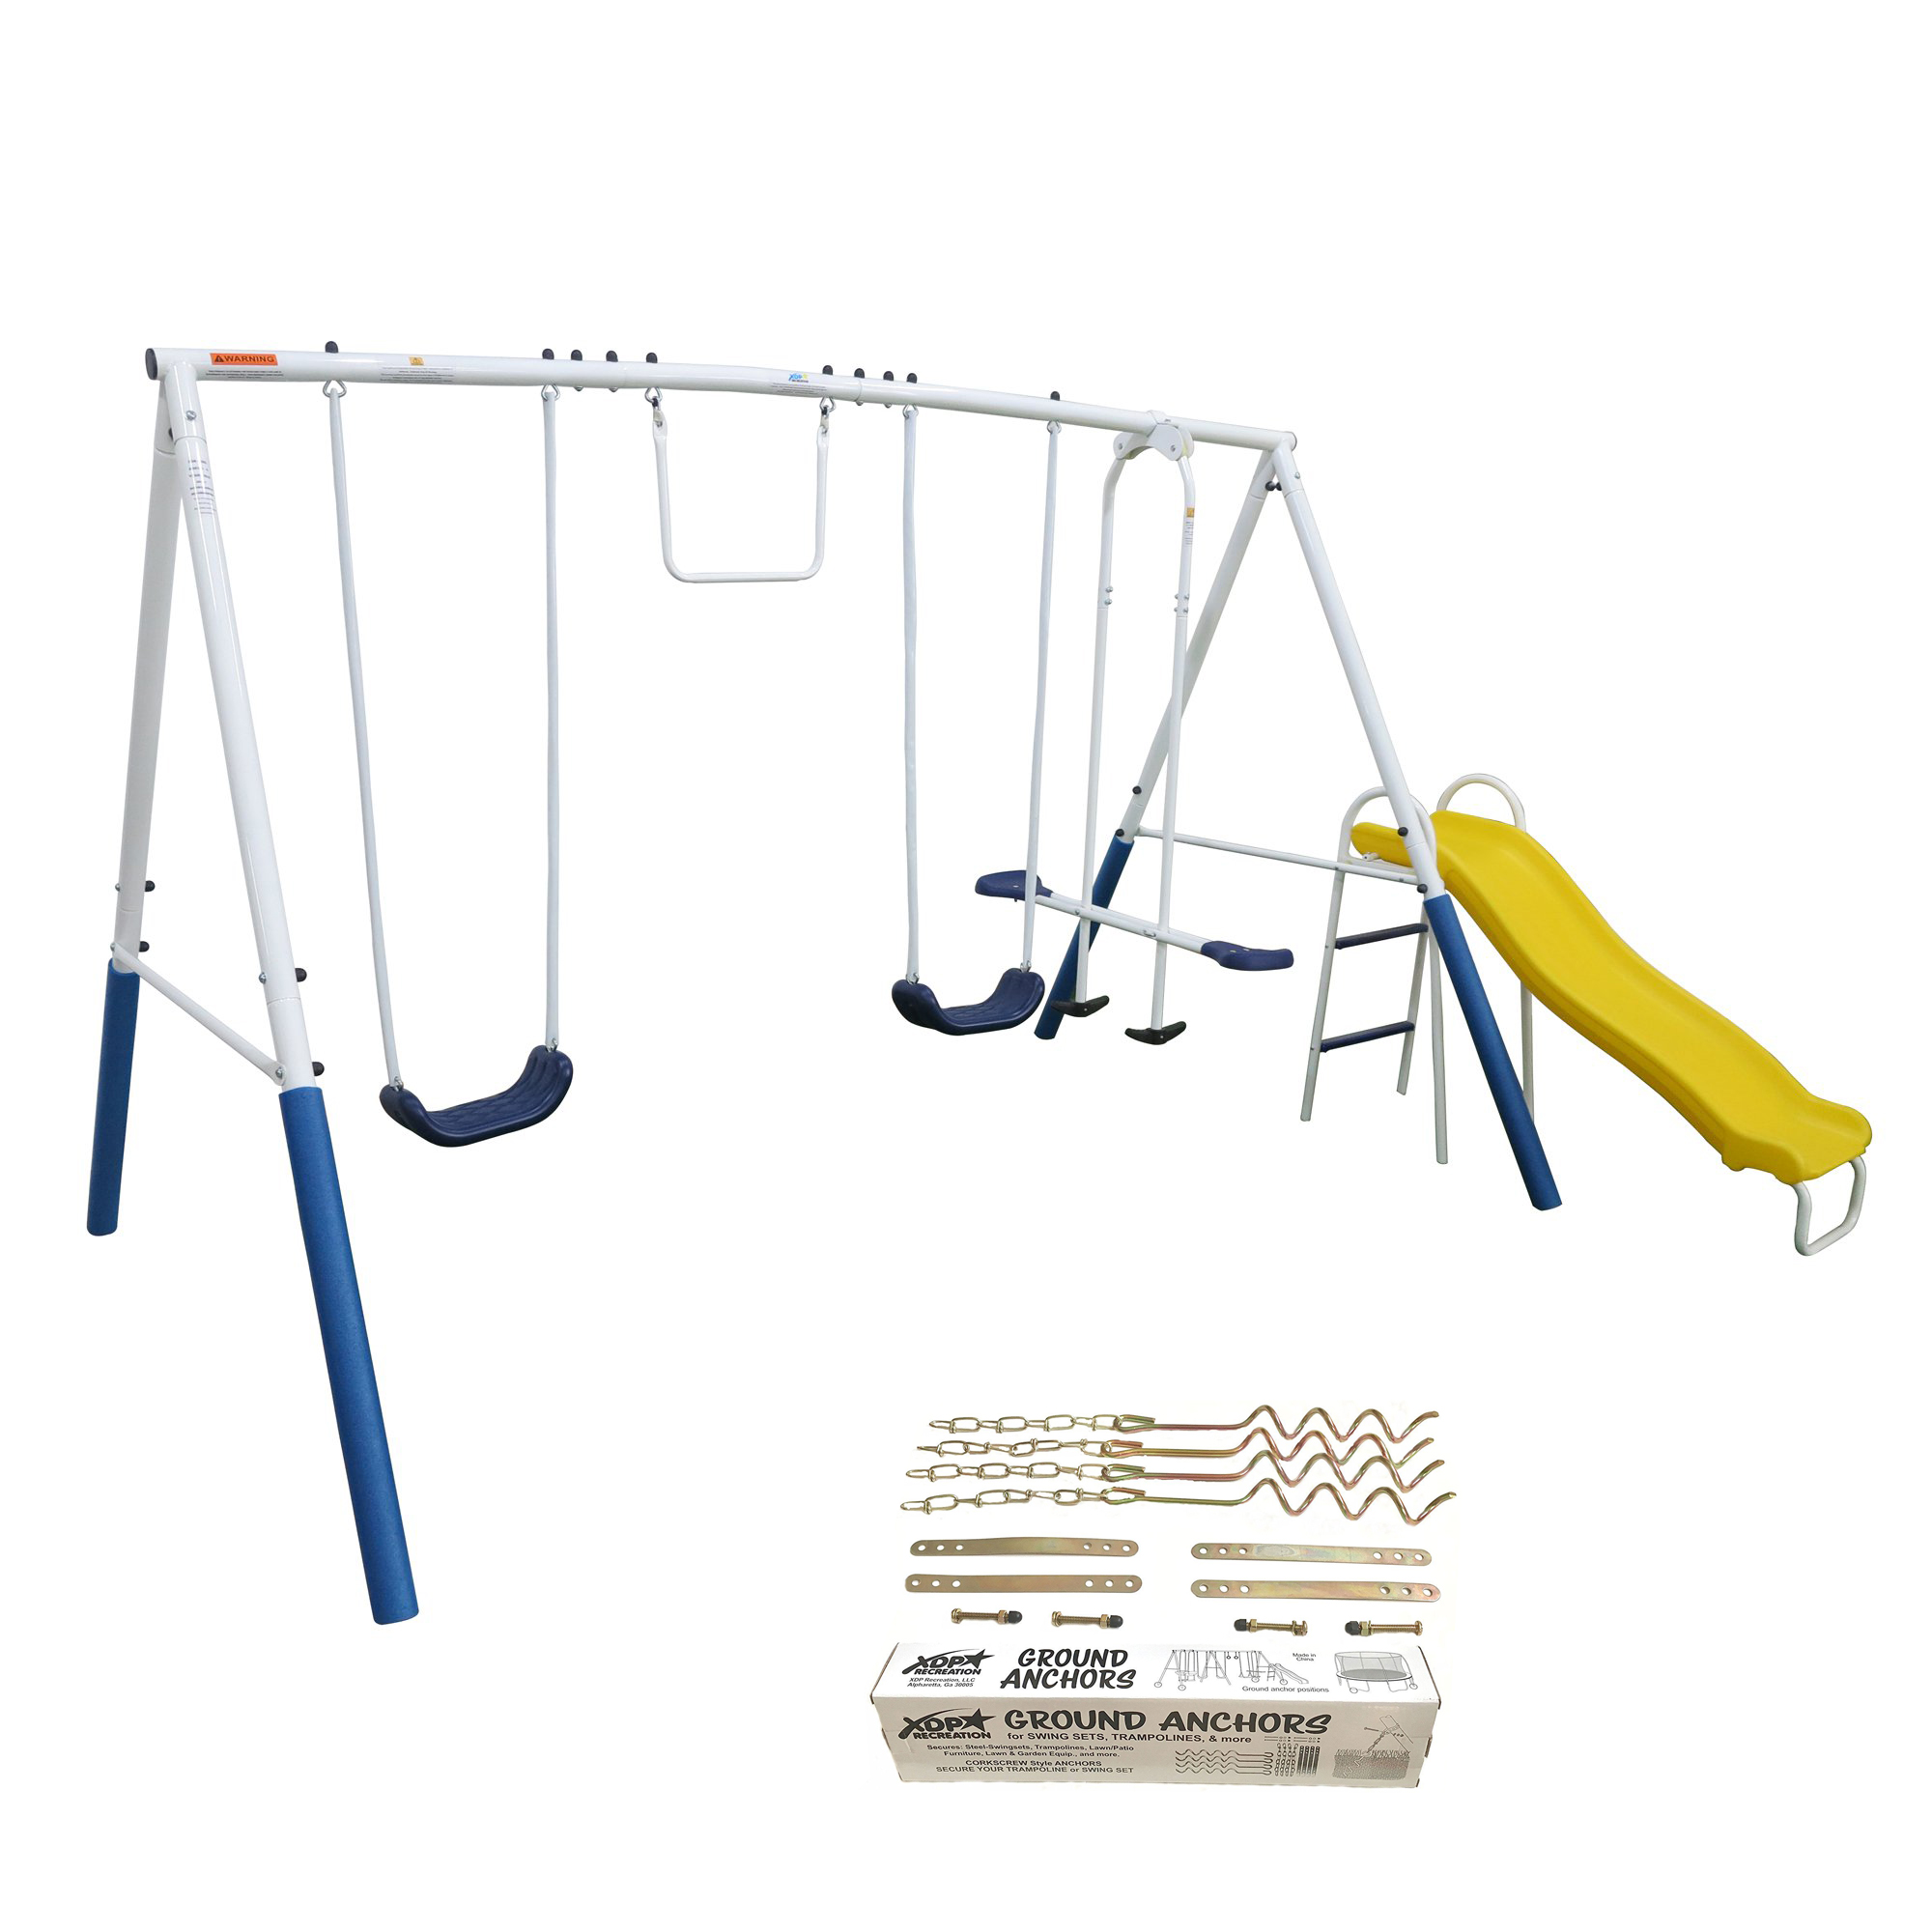 Xdp Recreation Blue Ridge Outdoor Backyard Kids Swing Set W Slide